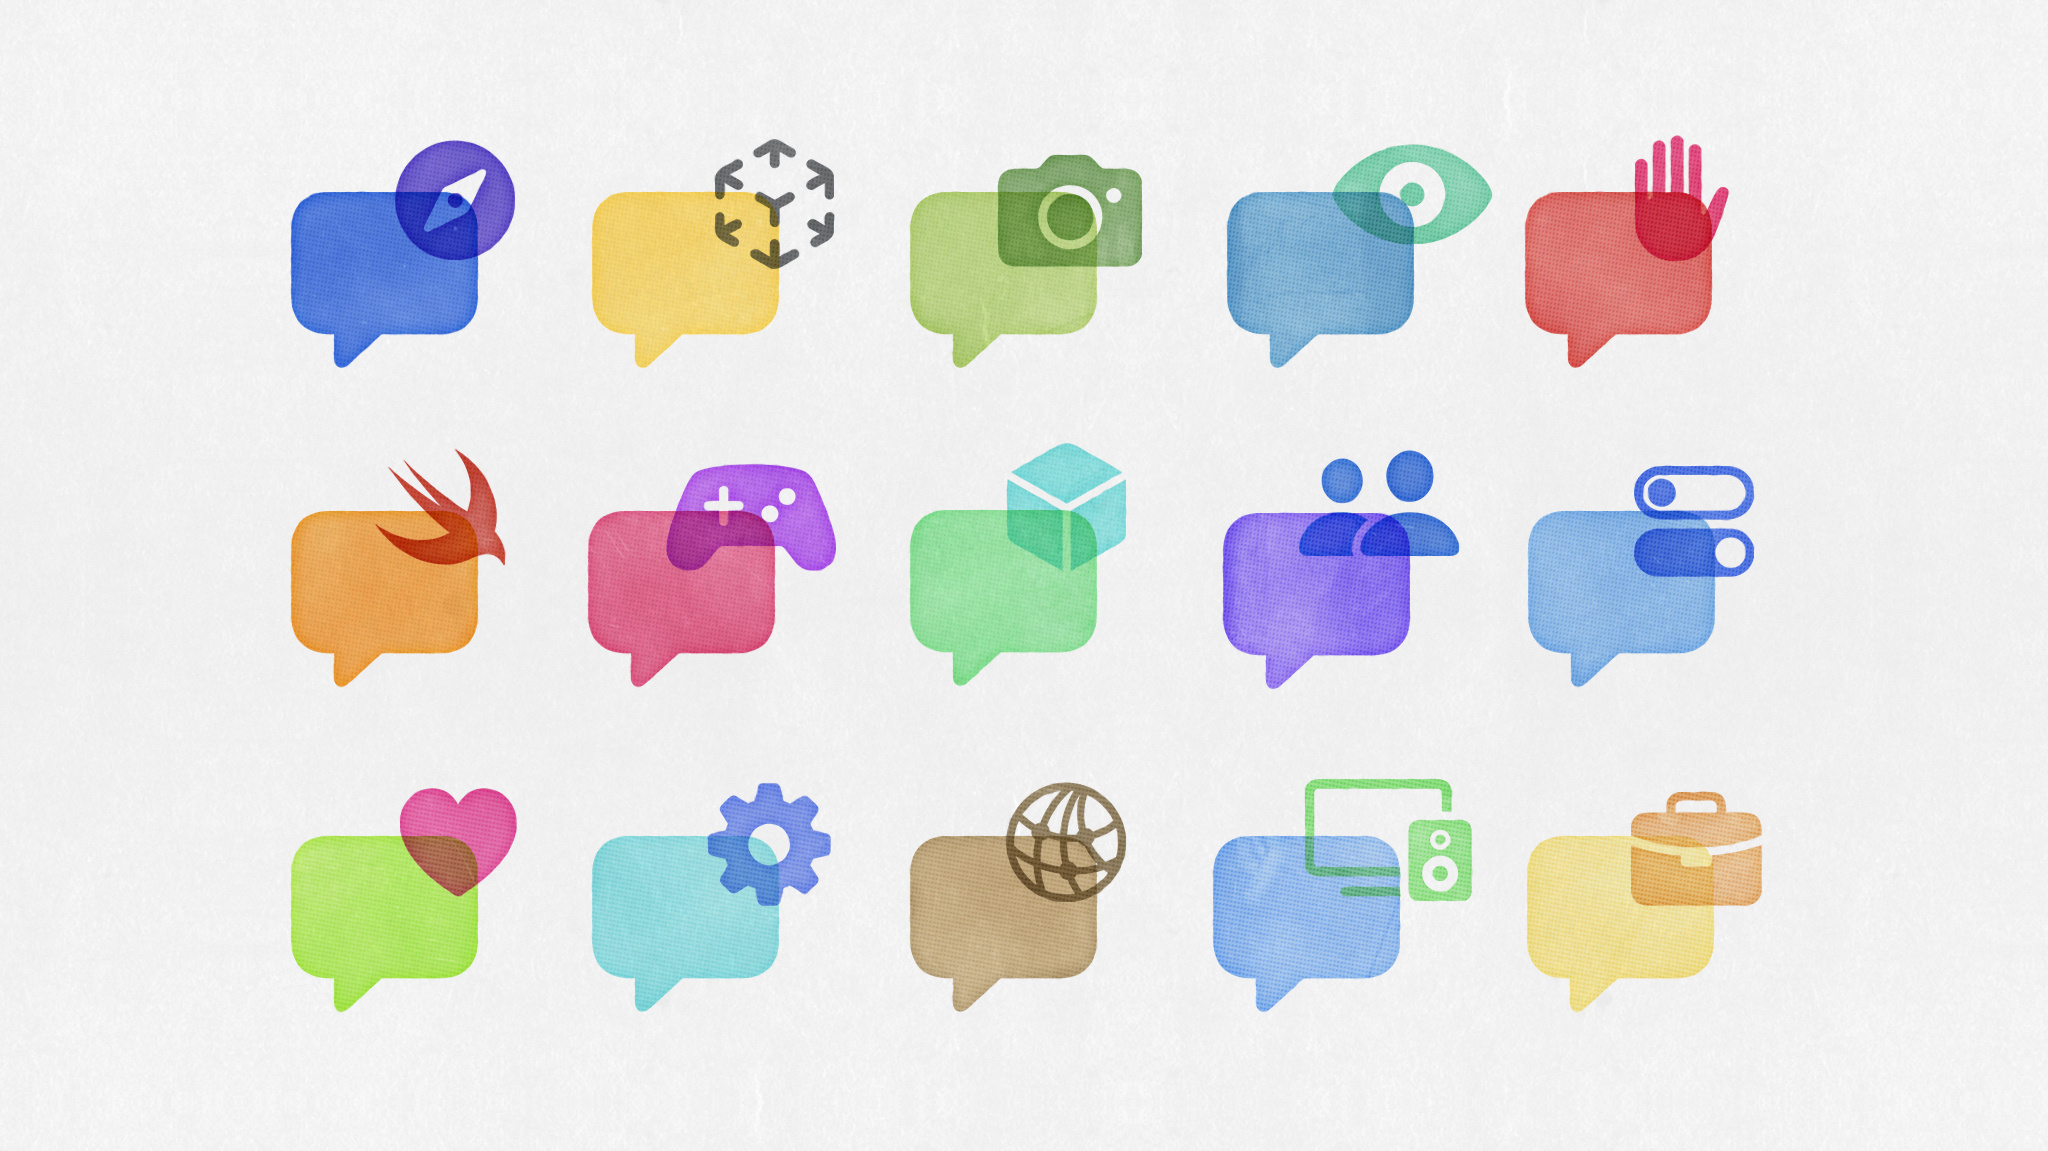 Three rows of colorful icons representing technology topics placed over speech bubbles